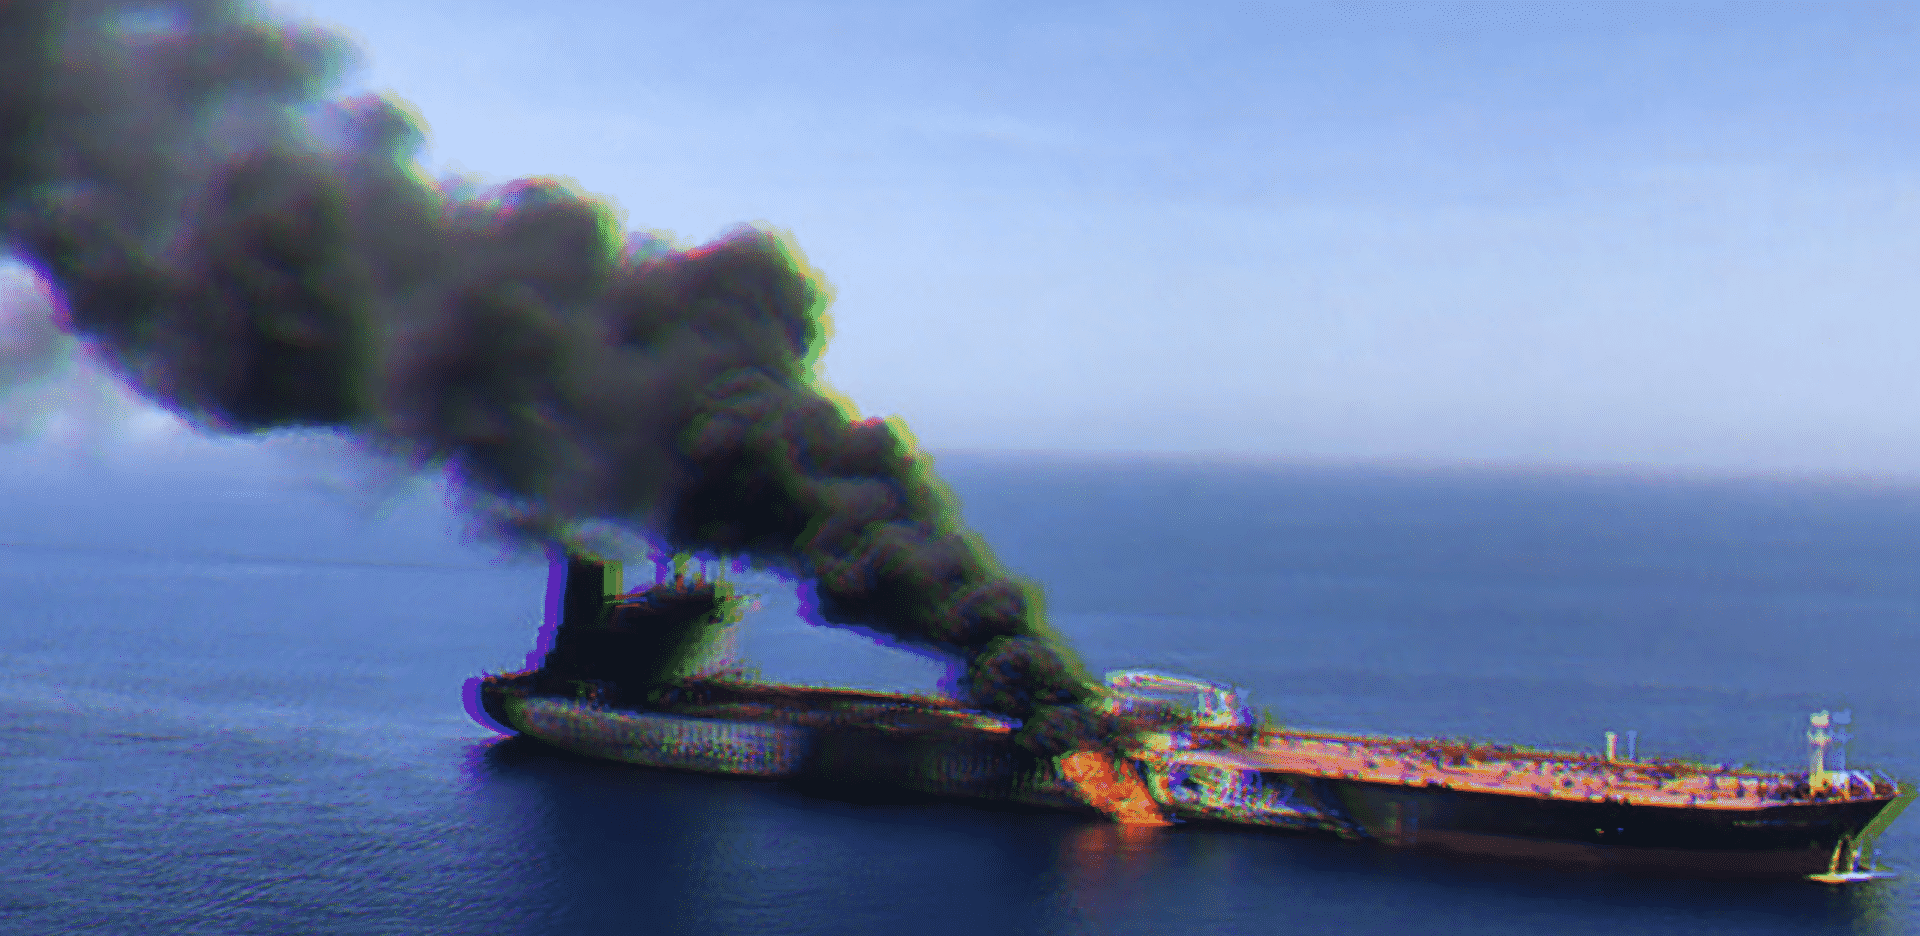 Gulf of Oman 'attack': Oil tankers on fire amid rising tensions between Iran and rivals